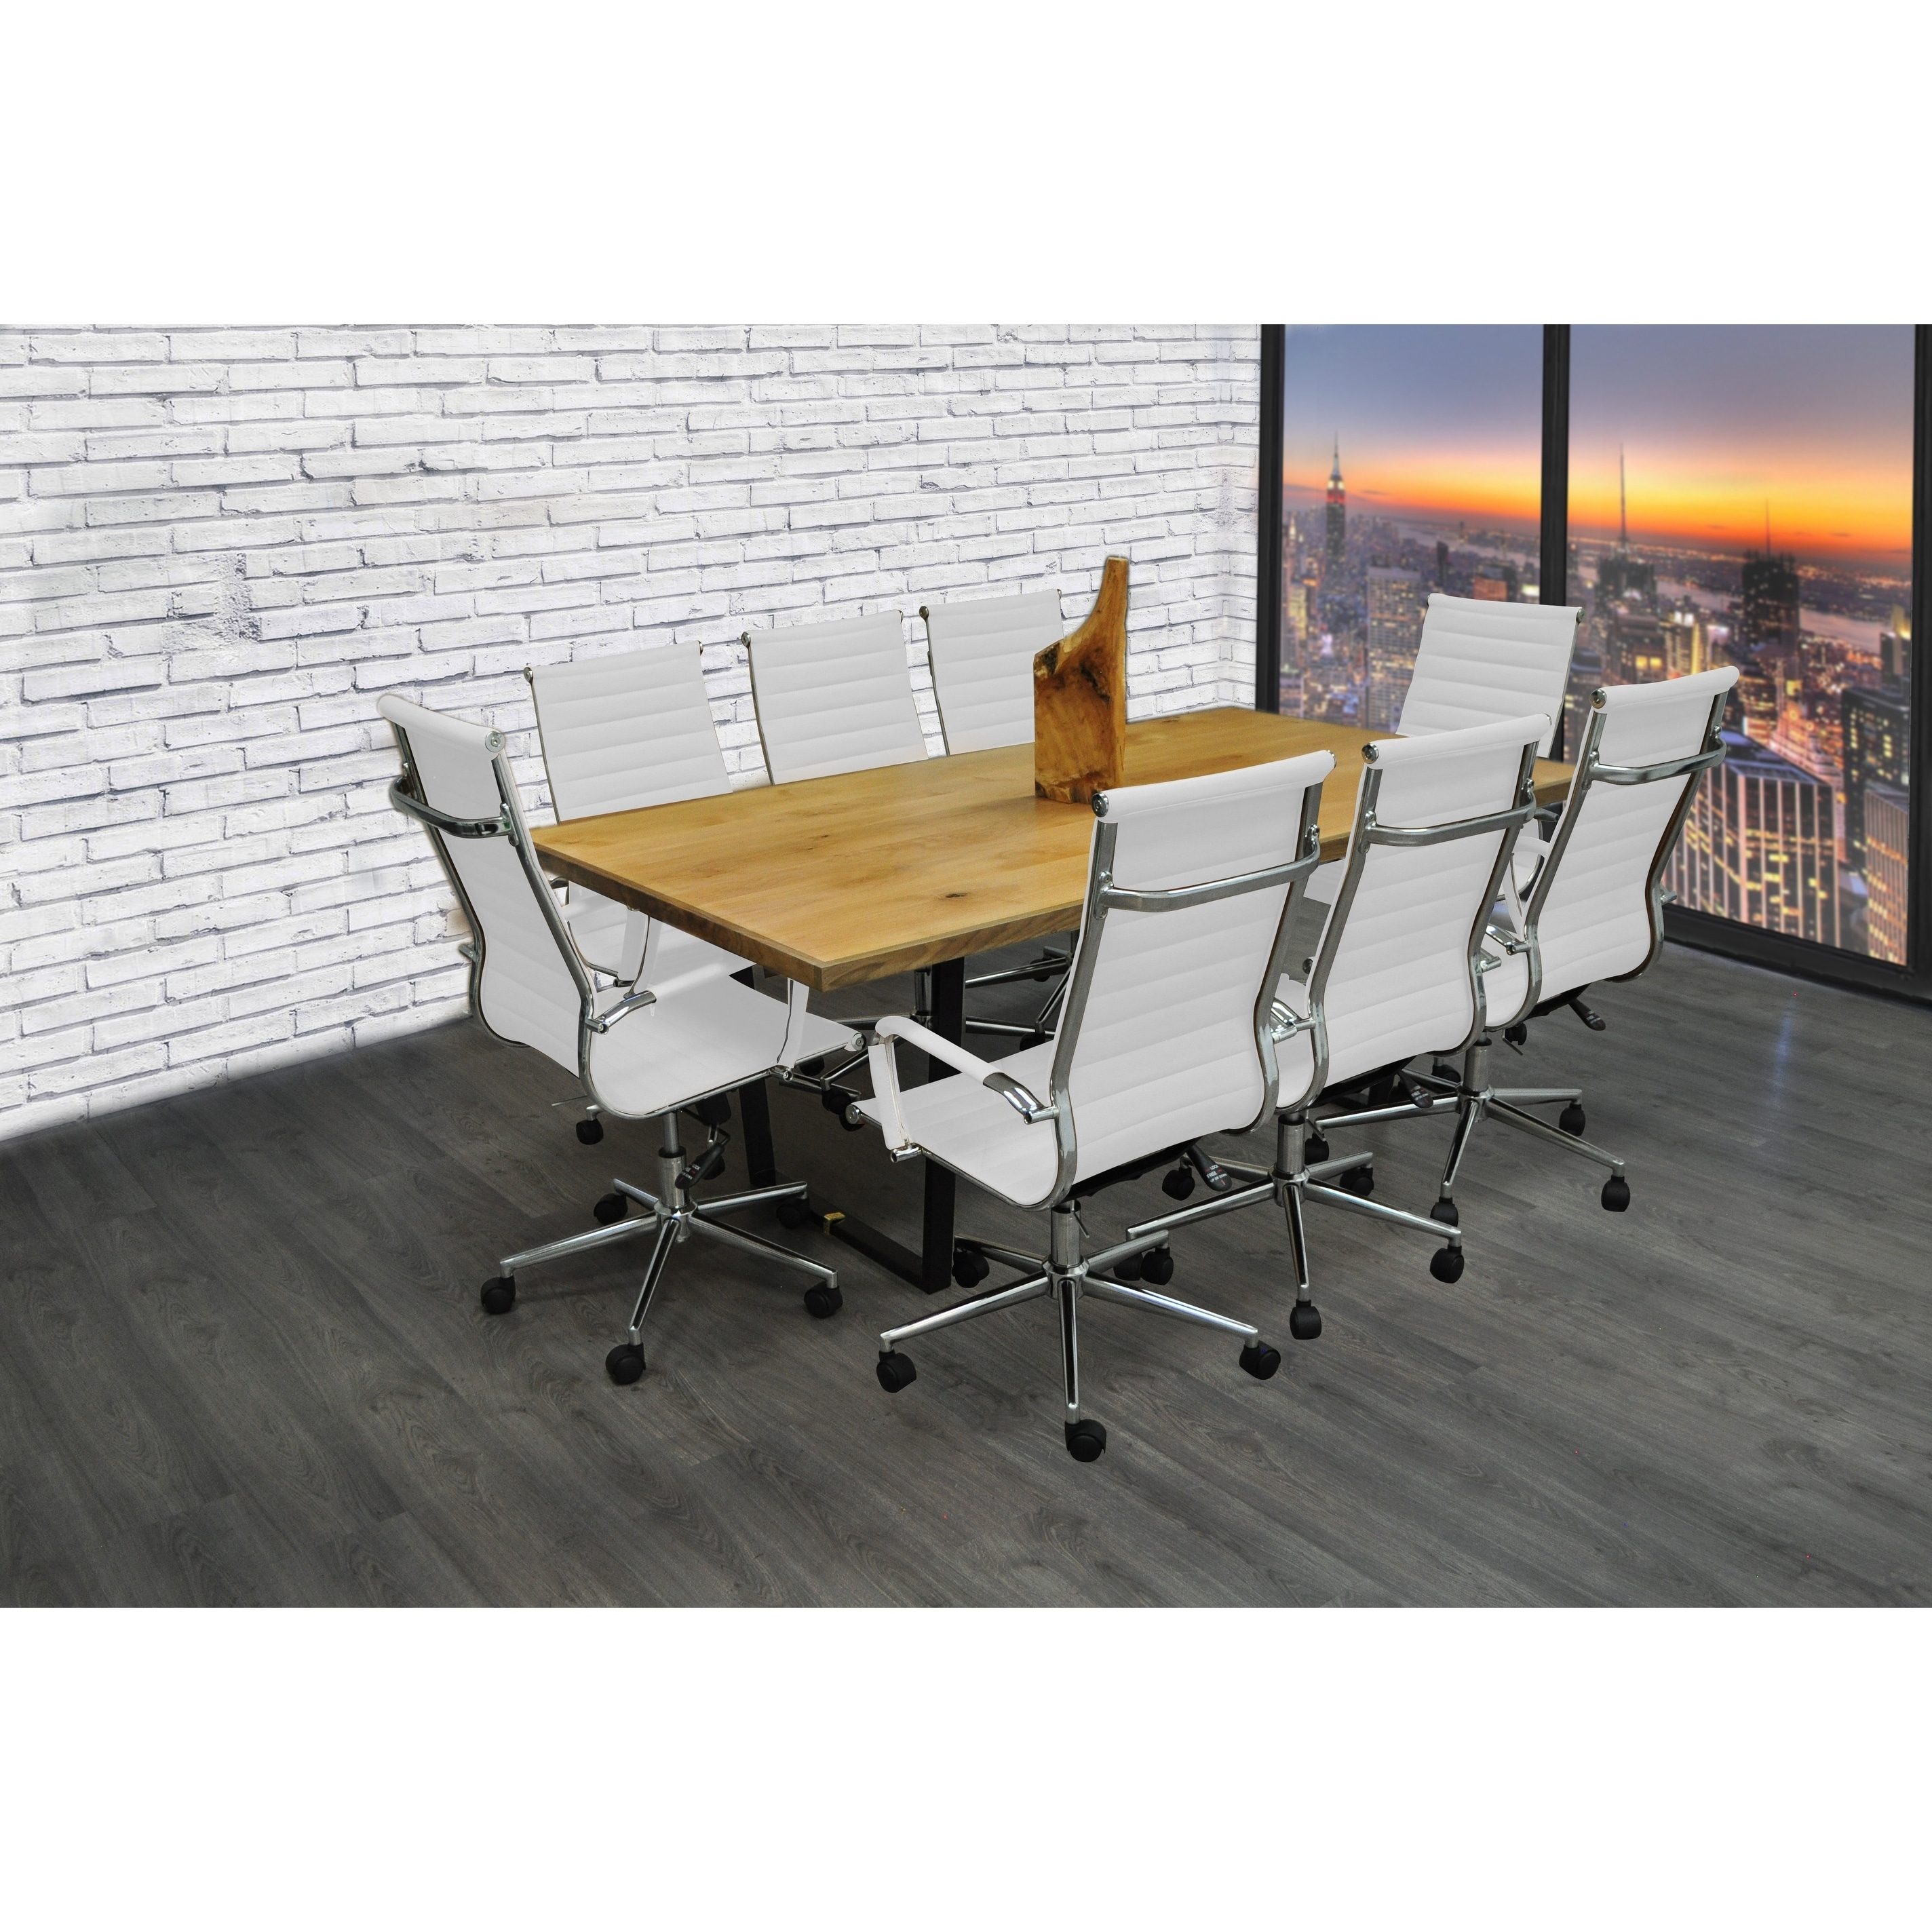 SOLIS Castillo 9 Piece Solid Wood Conference Table Set with White